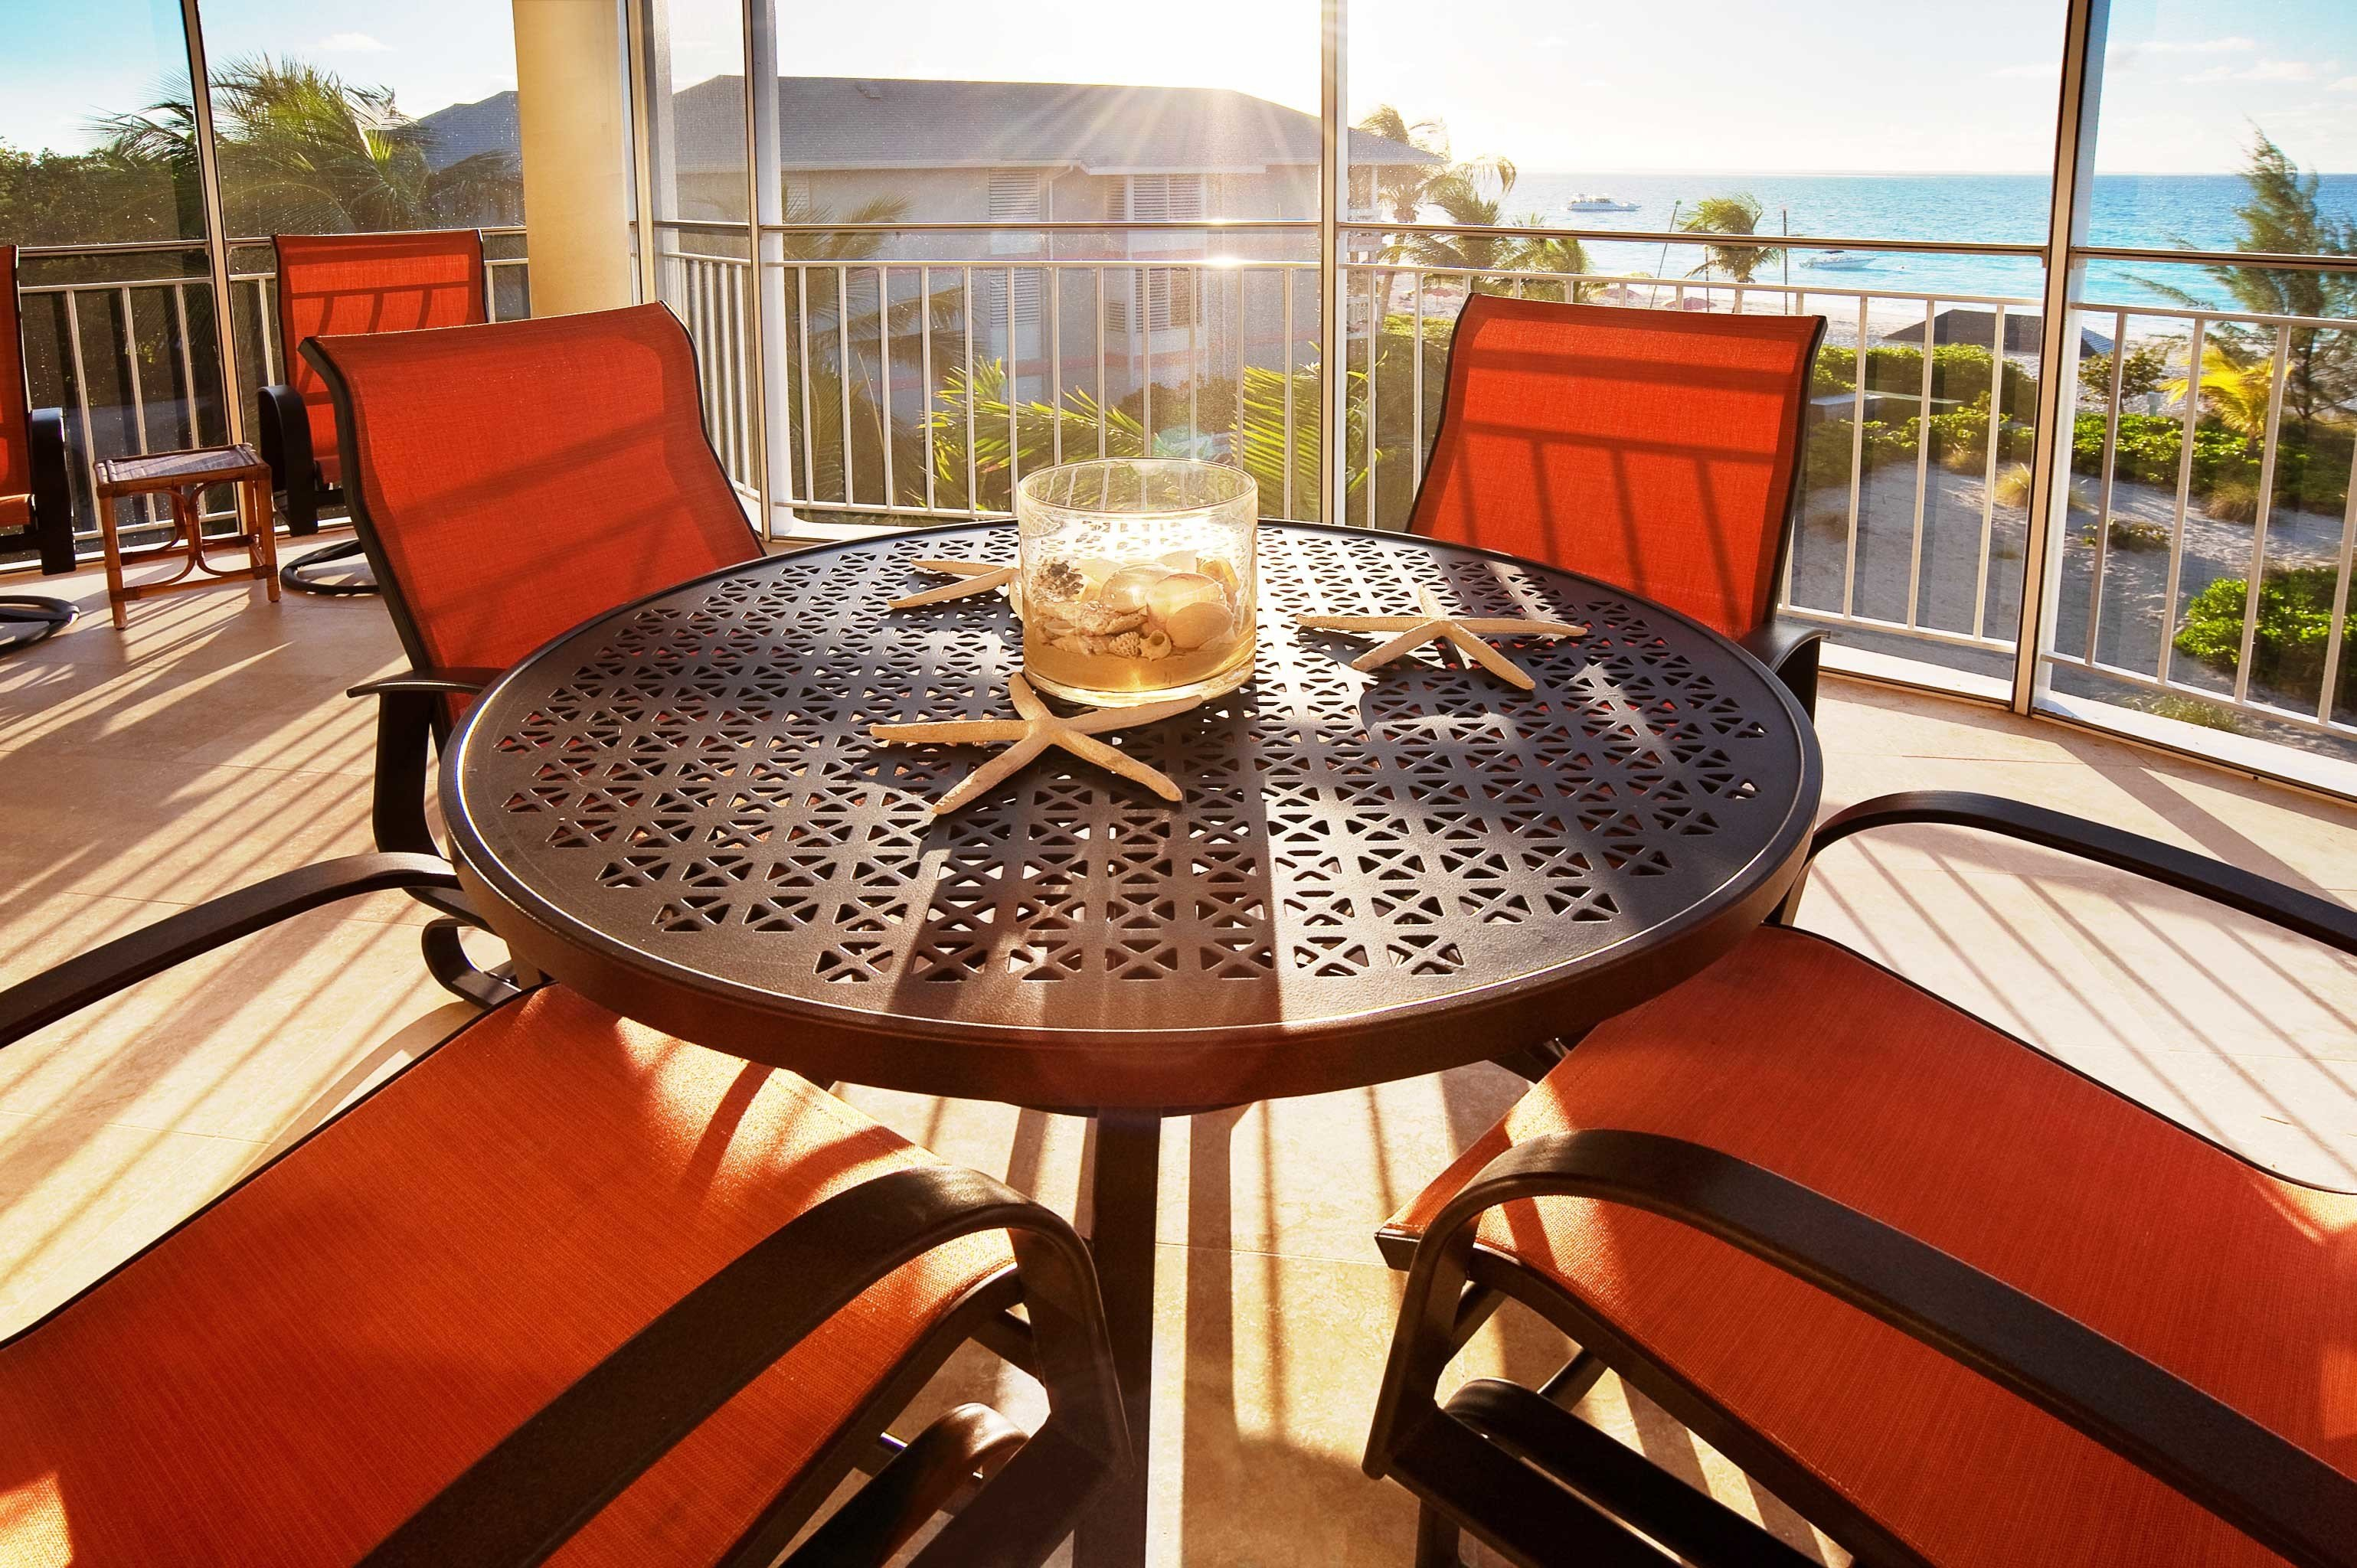 Beachfront Deck Dining Resort Scenic views chair wooden vehicle restaurant yacht dining table